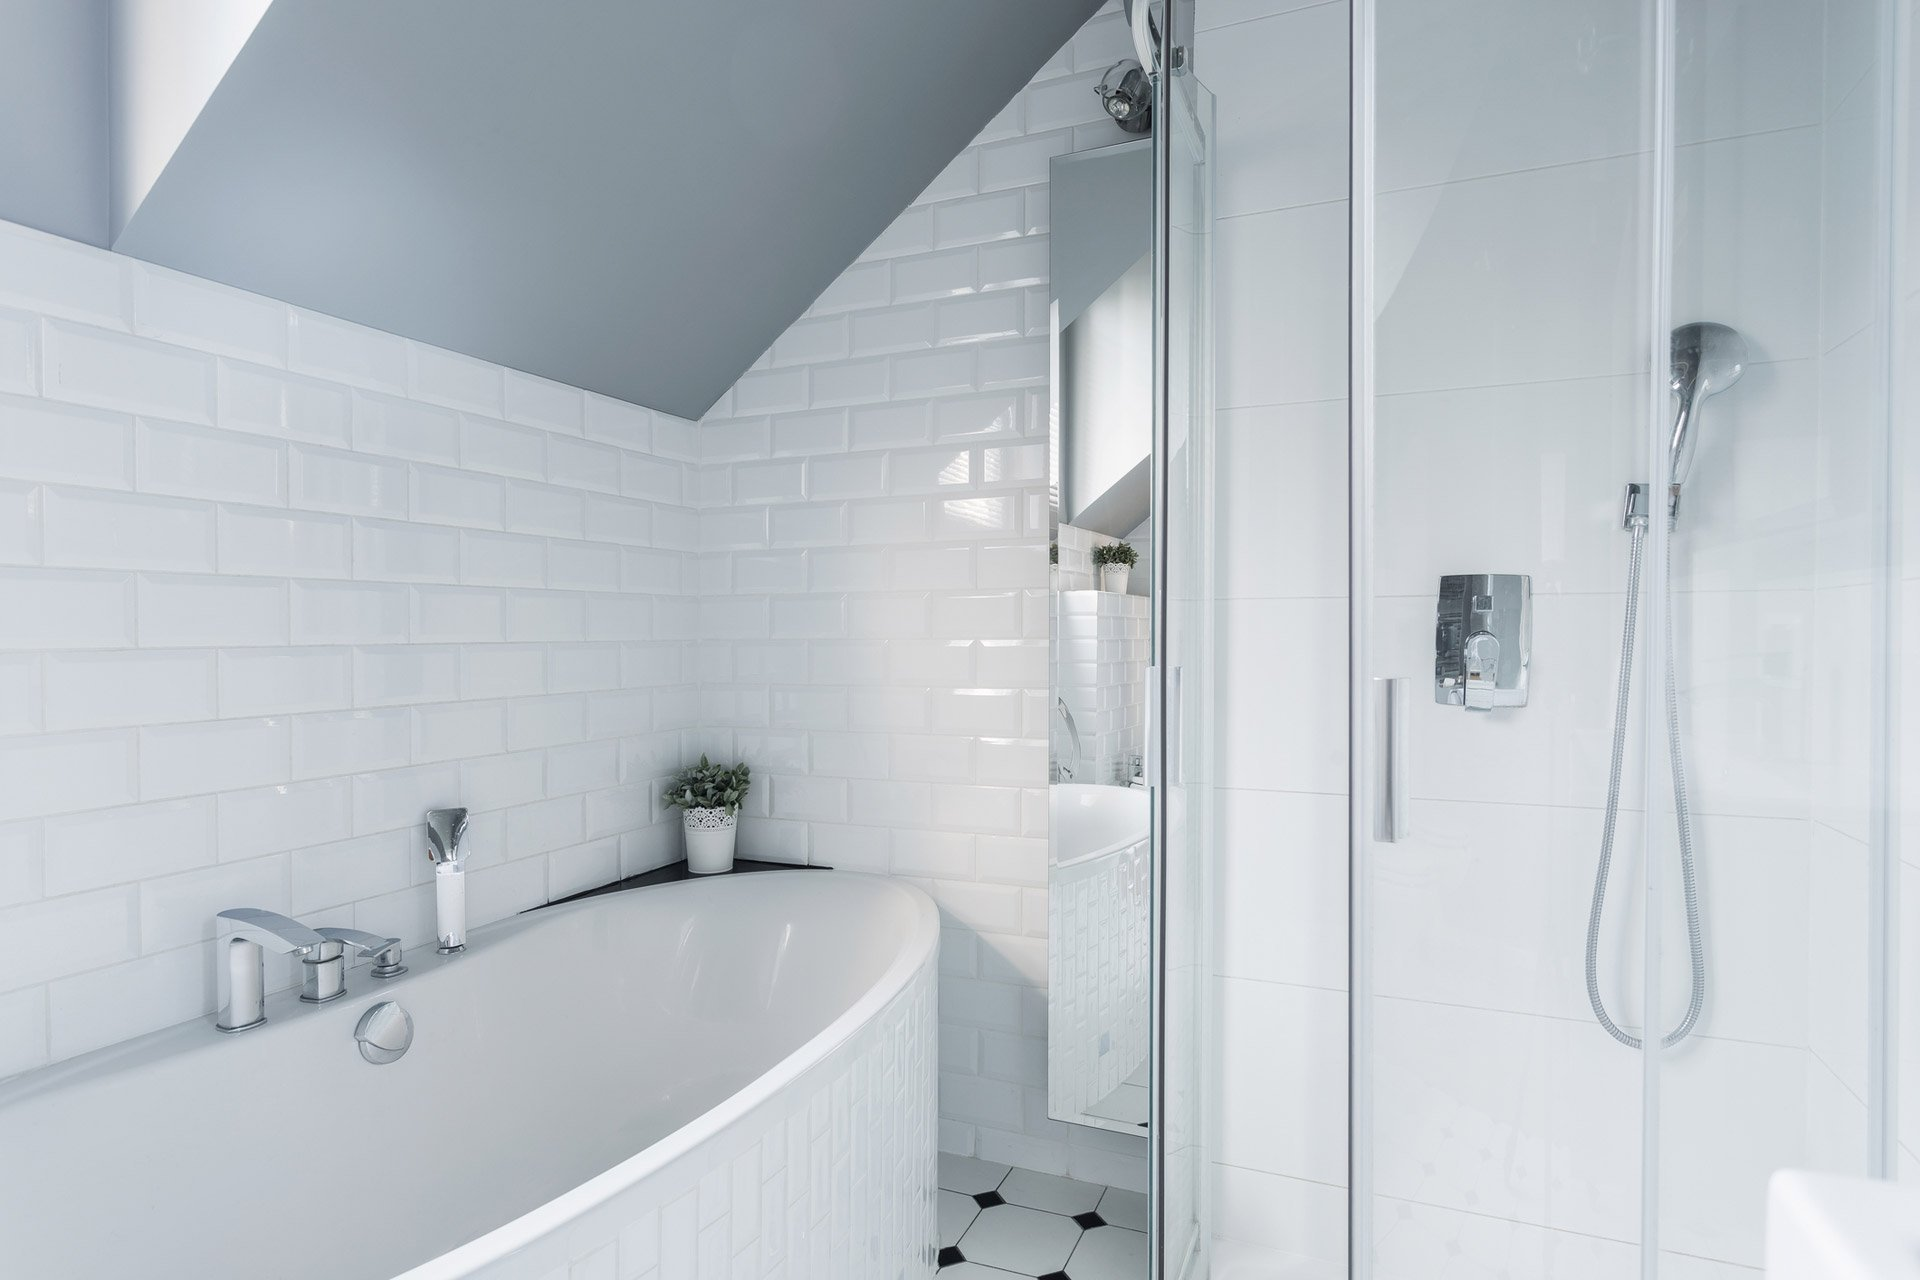 Prevent Water Damage in the Bathroom